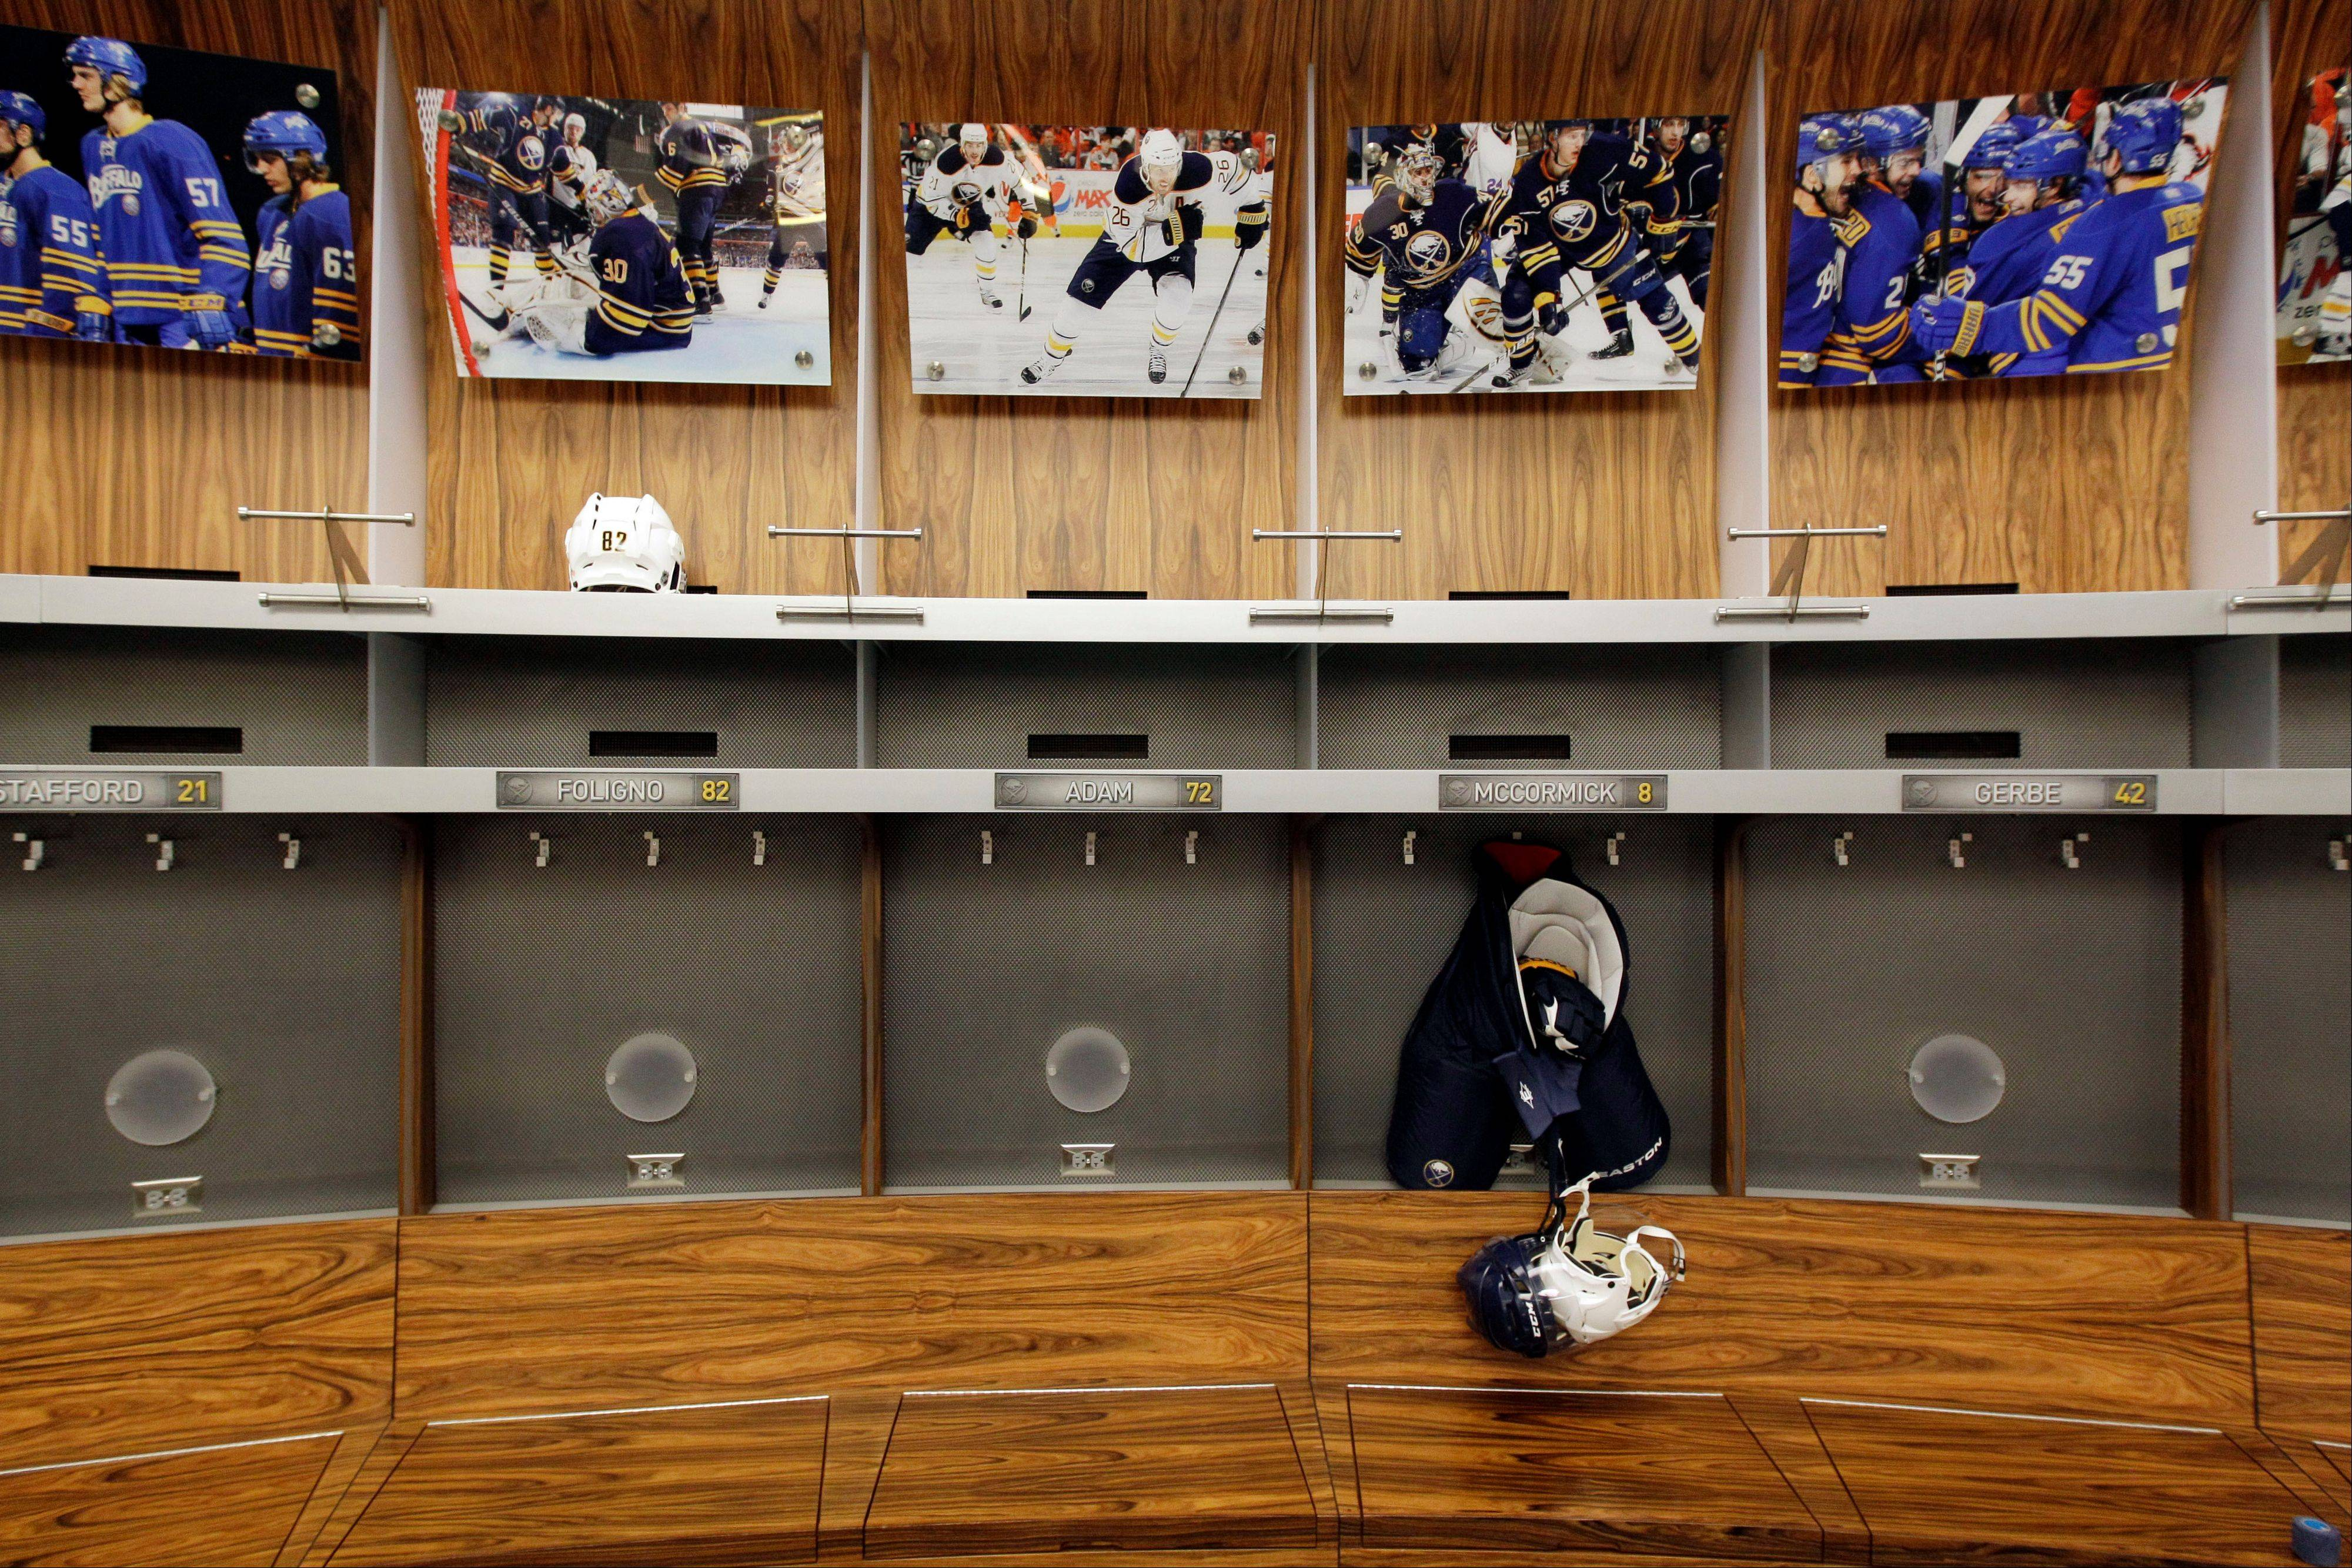 An empty locker room is shown during the NHL labor lockout at the First Niagara Center, home of the Buffalo Sabres, in Buffalo, N.Y. The NHL lockout that's already wiped out the first three months of the season is taking its toll on Buffalo businesses. And it's no different in many of the NHL's 29 other markets.